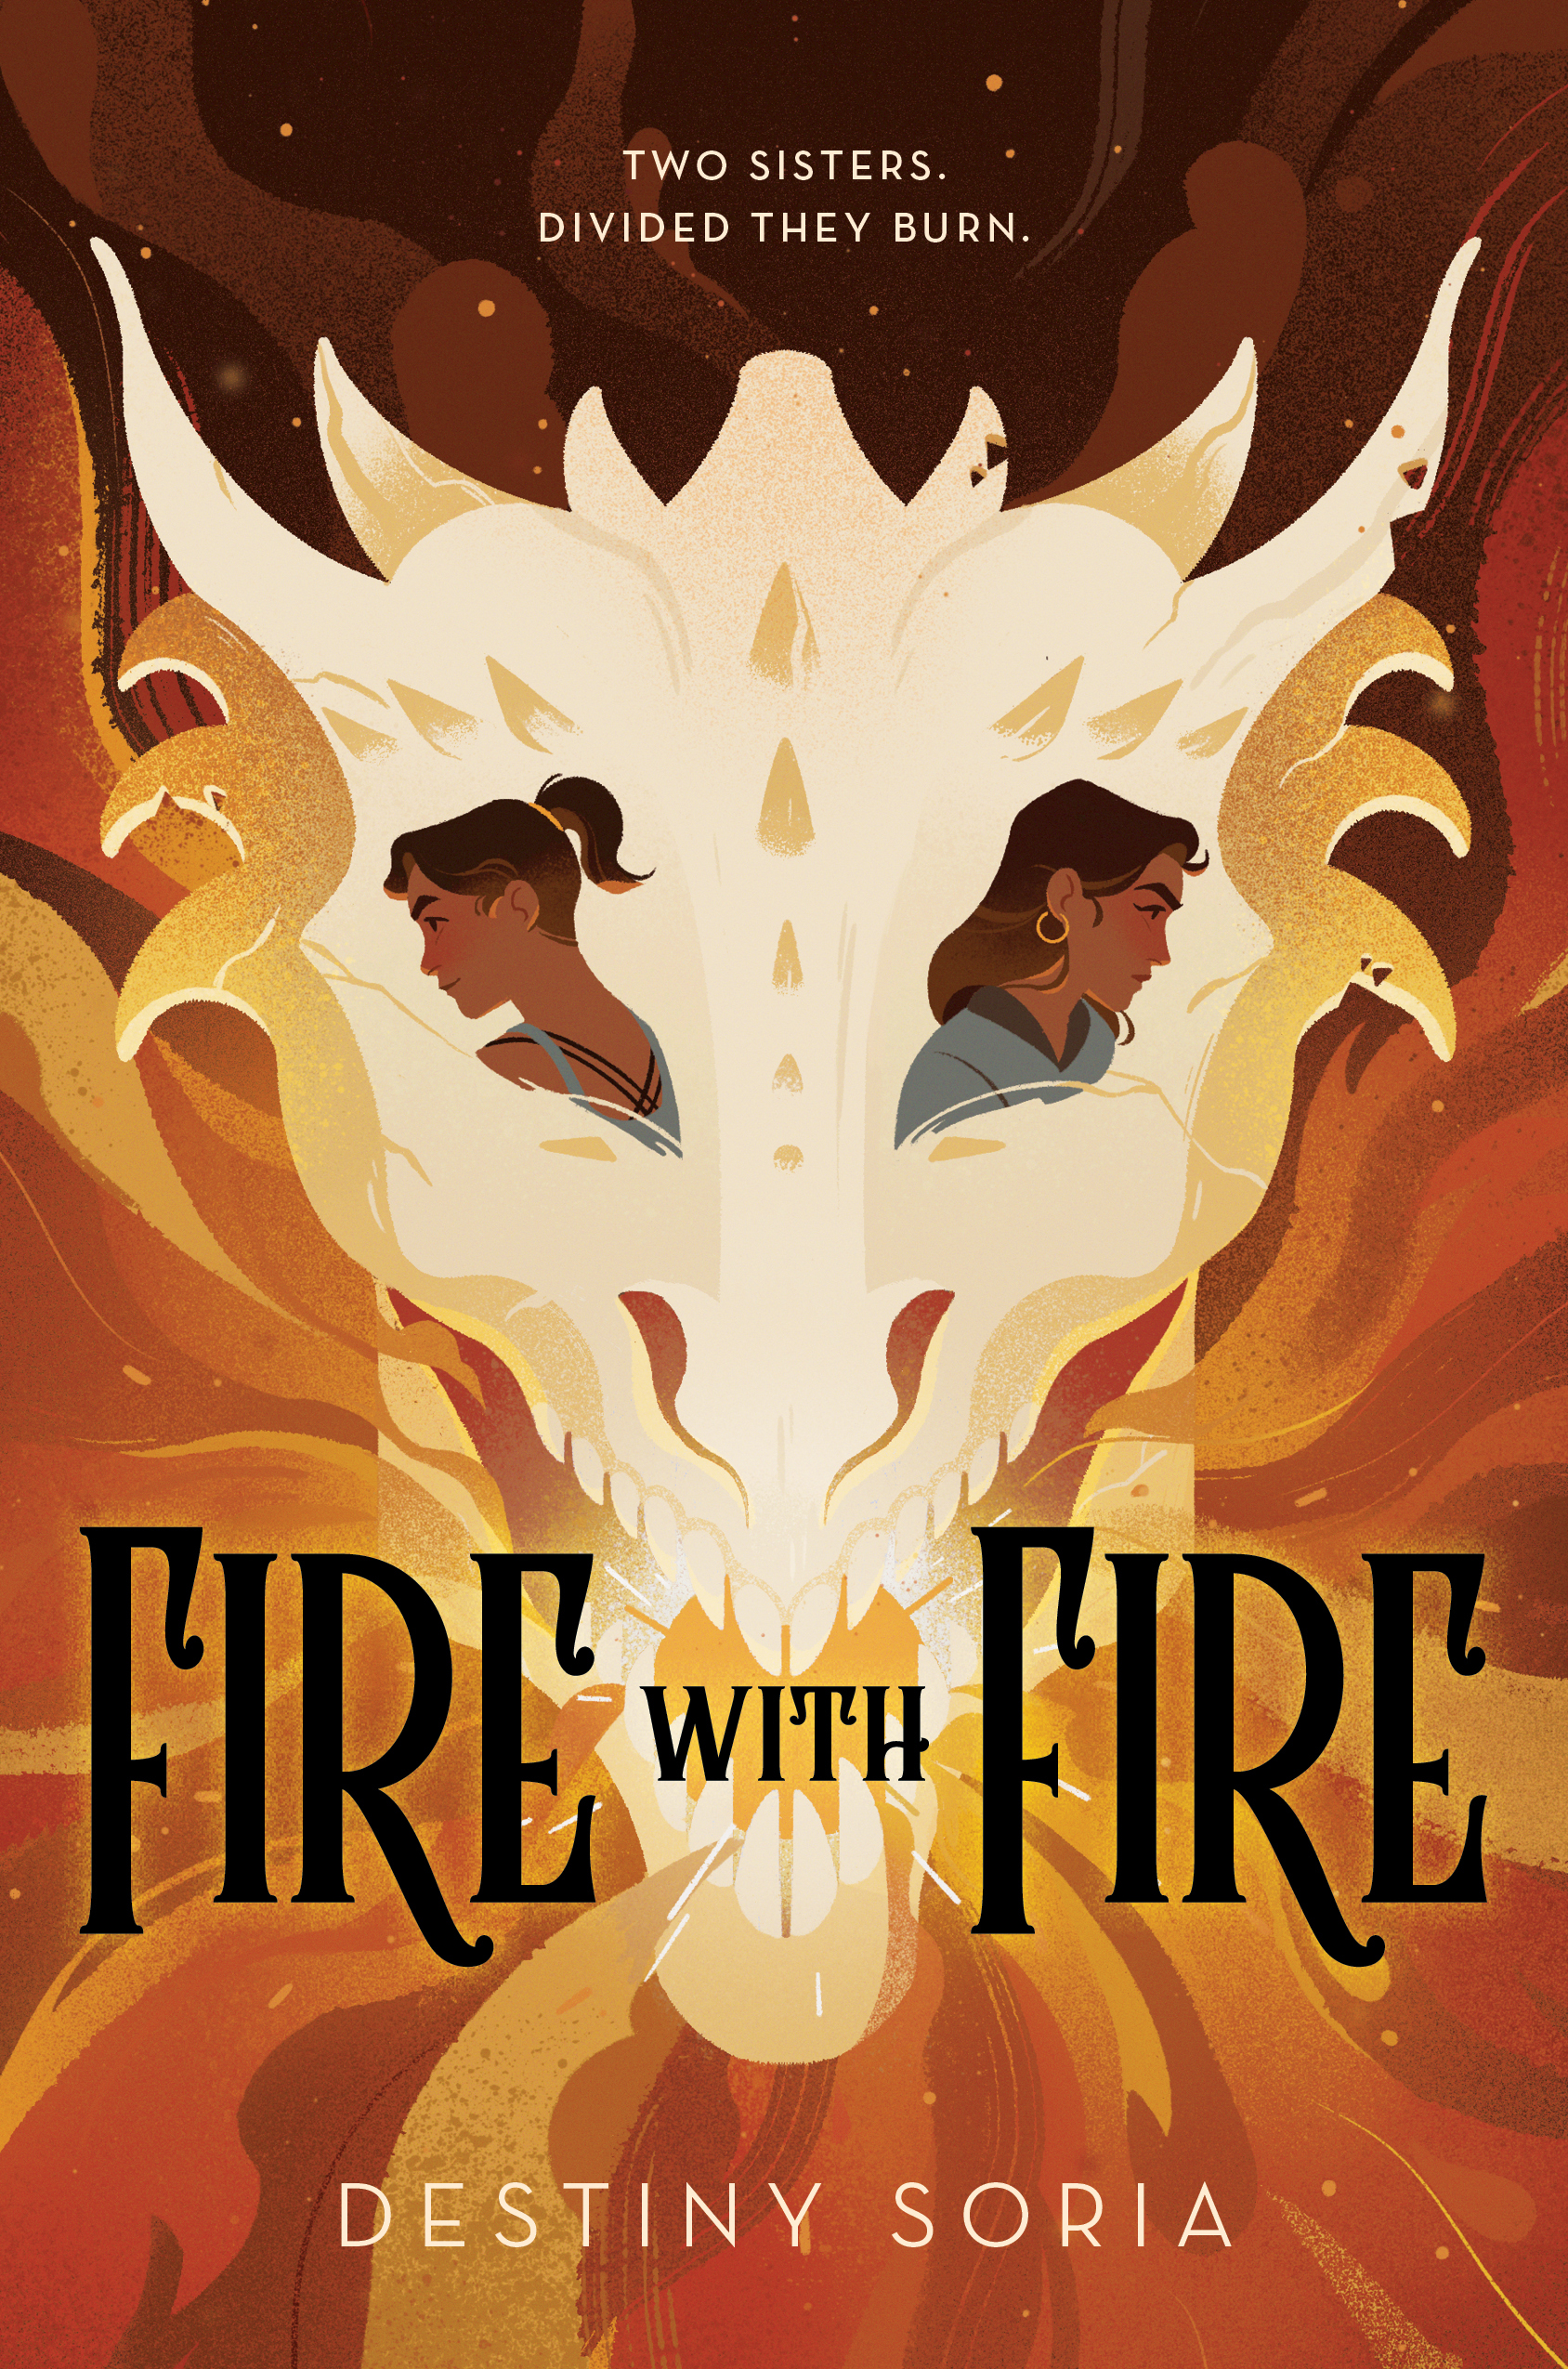 Fire with Fire by Destiny Soria